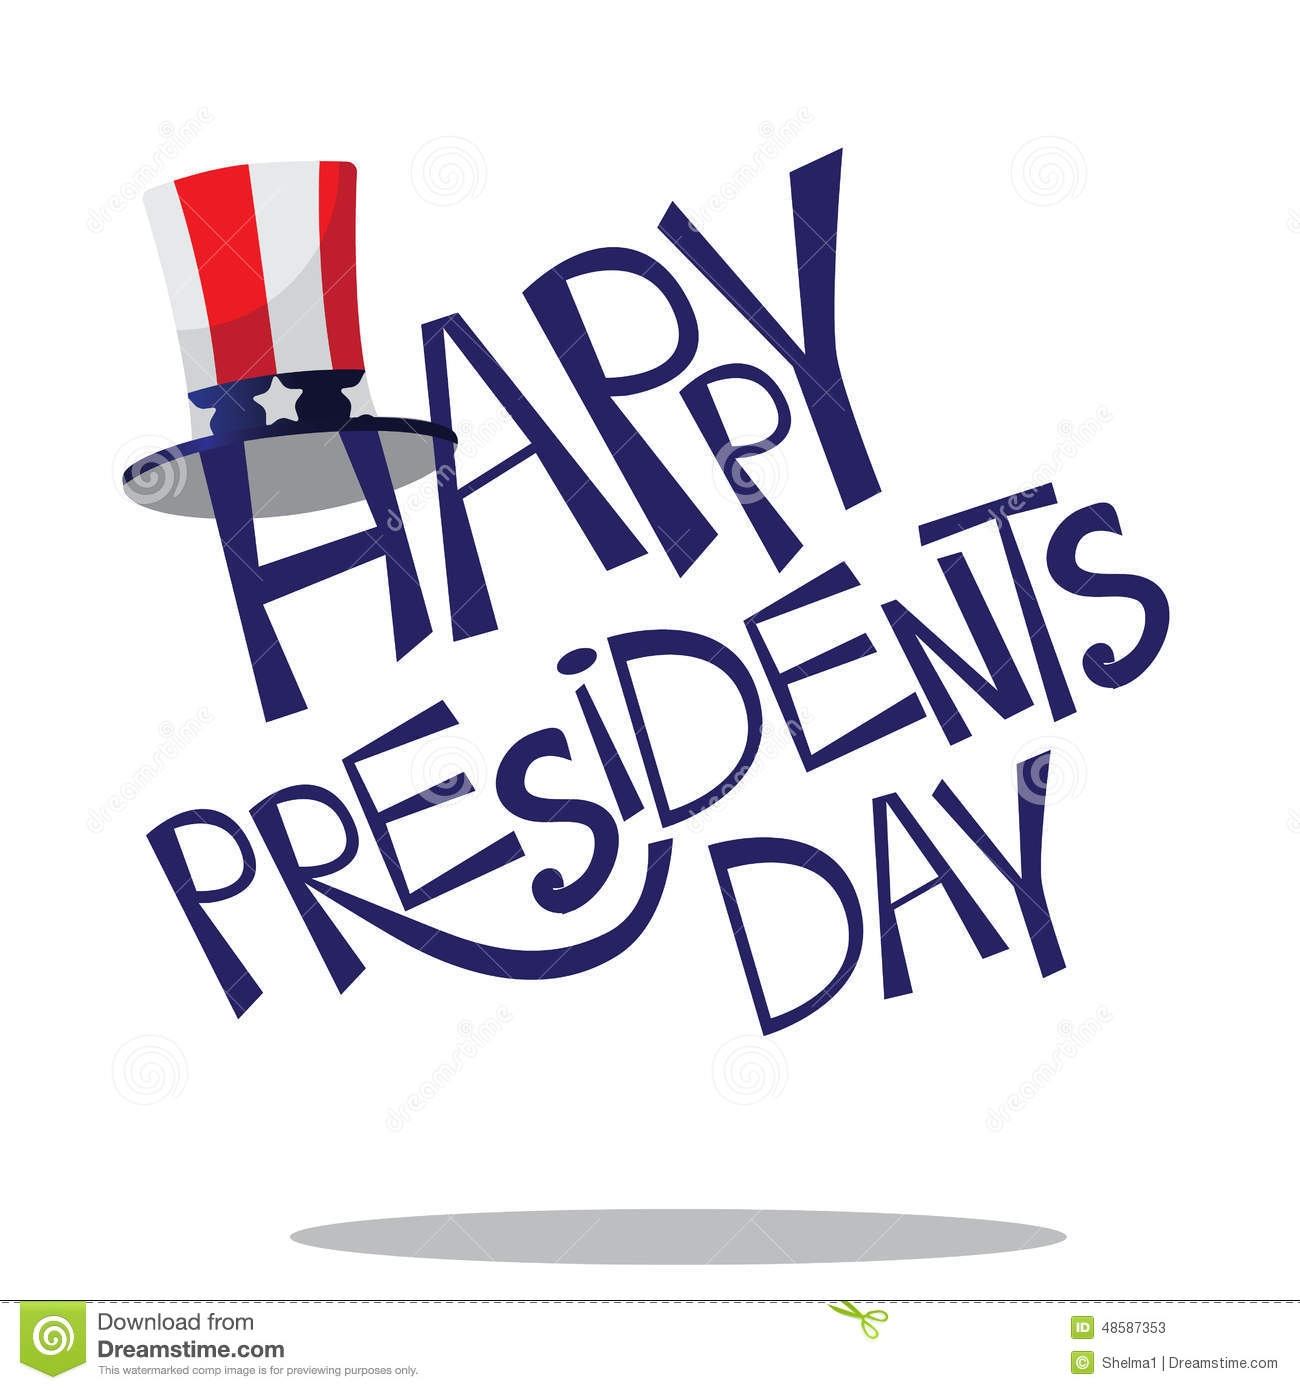 presidents day - Presidents Day Clipart